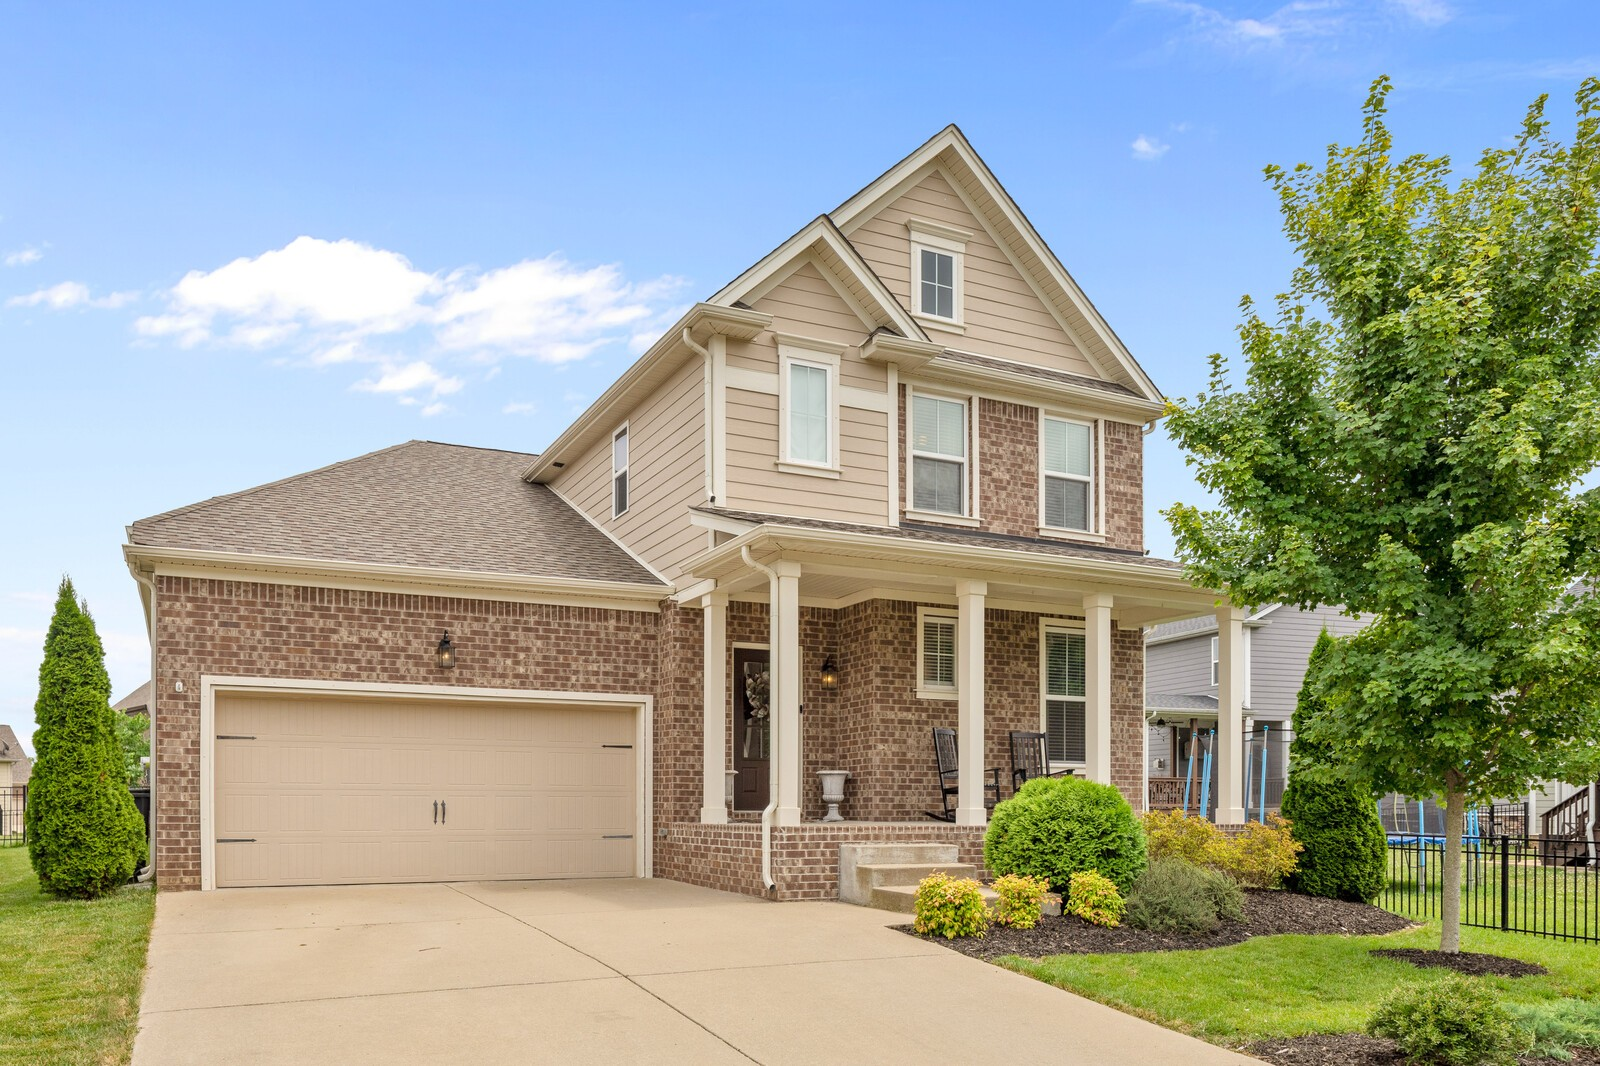 Tucked away on a peaceful cul-de-sac, this beautiful Jones built home in the cherished Canterbury subdivision is move-in ready!  The comfortable floorplan creates a welcoming atmosphere. Chef's kitchen with gas range & oven, large island, ample cabinetry & walk-in pantry. Flex area upstairs can be used as a bonus room or additional sleeping area with the Murphy bed. Backyard oasis with built-in fire pit, a place to relax or entertain.  An easy walk to the neighborhood pool and playground.